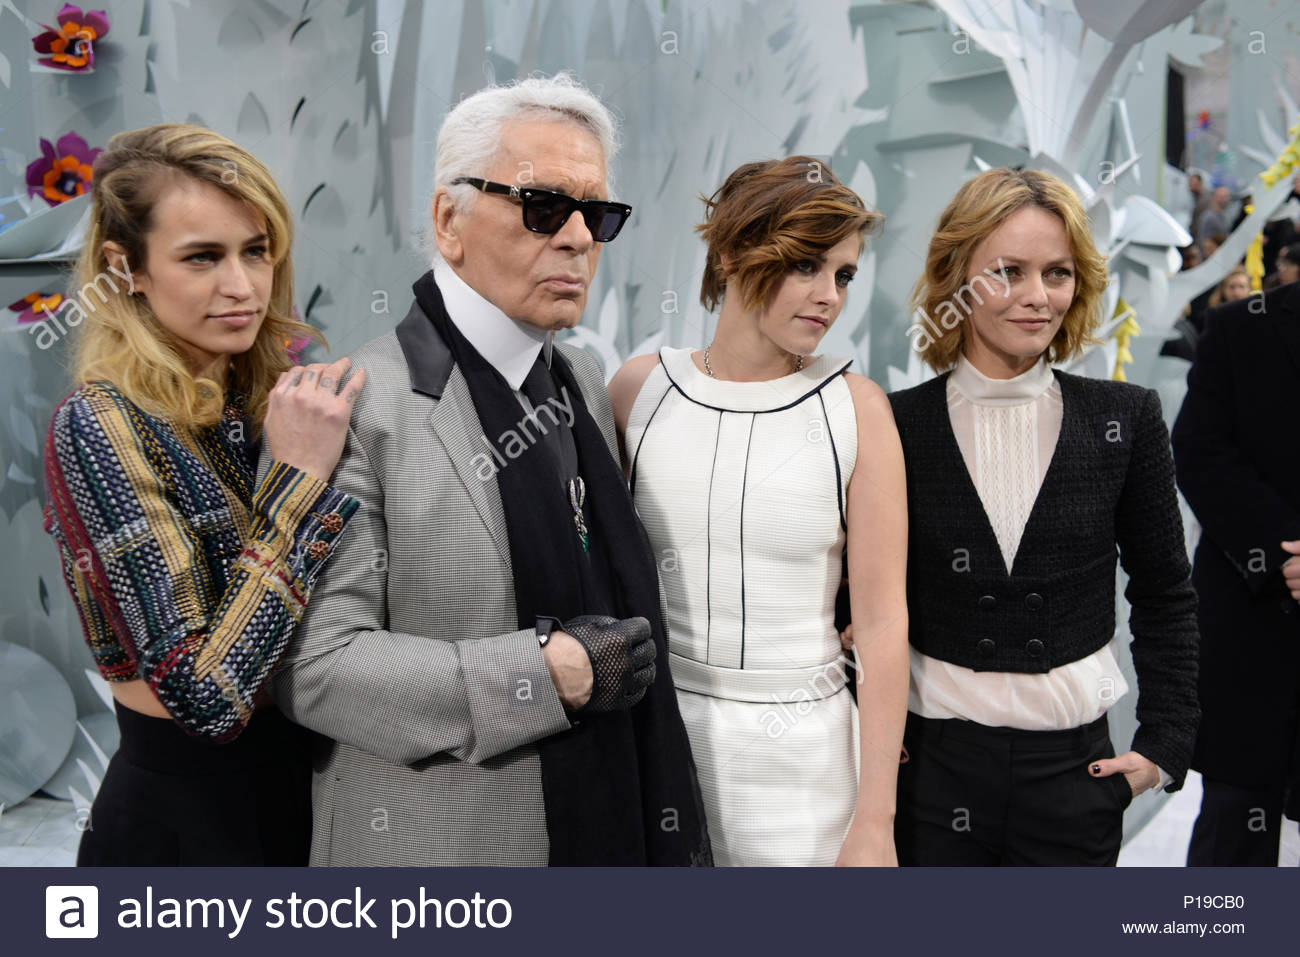 Alice Dellal, Karl Lagerfeld, Kristen Stewart, Vanessa Paradis.     MANDATORY BYLINE TO READ INFPhoto.com ONLY    Alice Dellal attending the  Chanel show as ... 1c8e918b8f0f